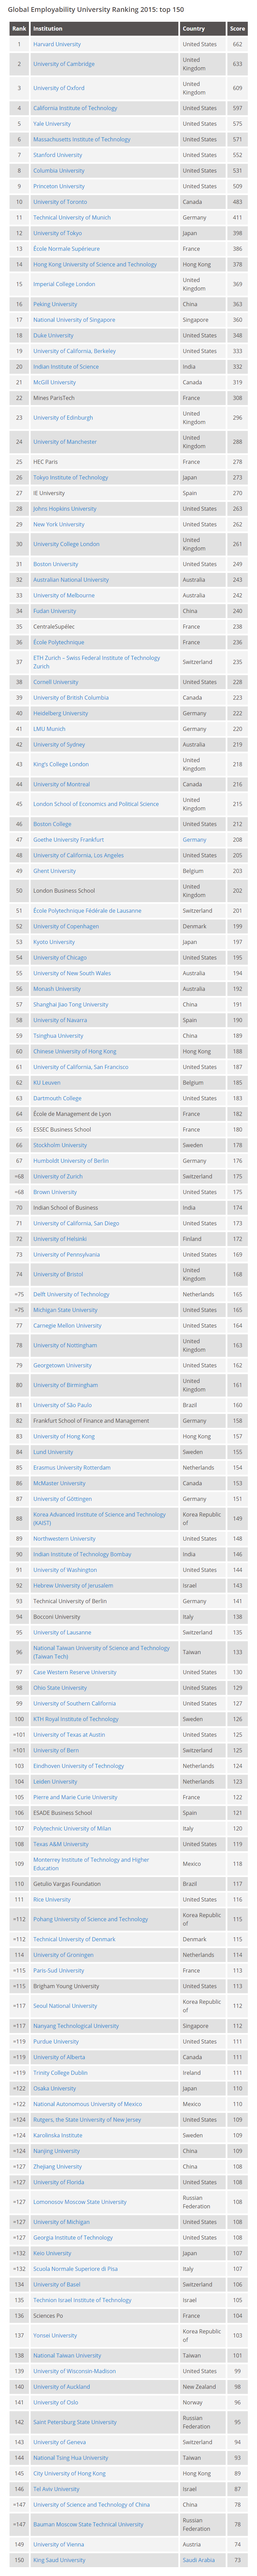 Global Employability University Ranking 2015 results Times Higher Education THE